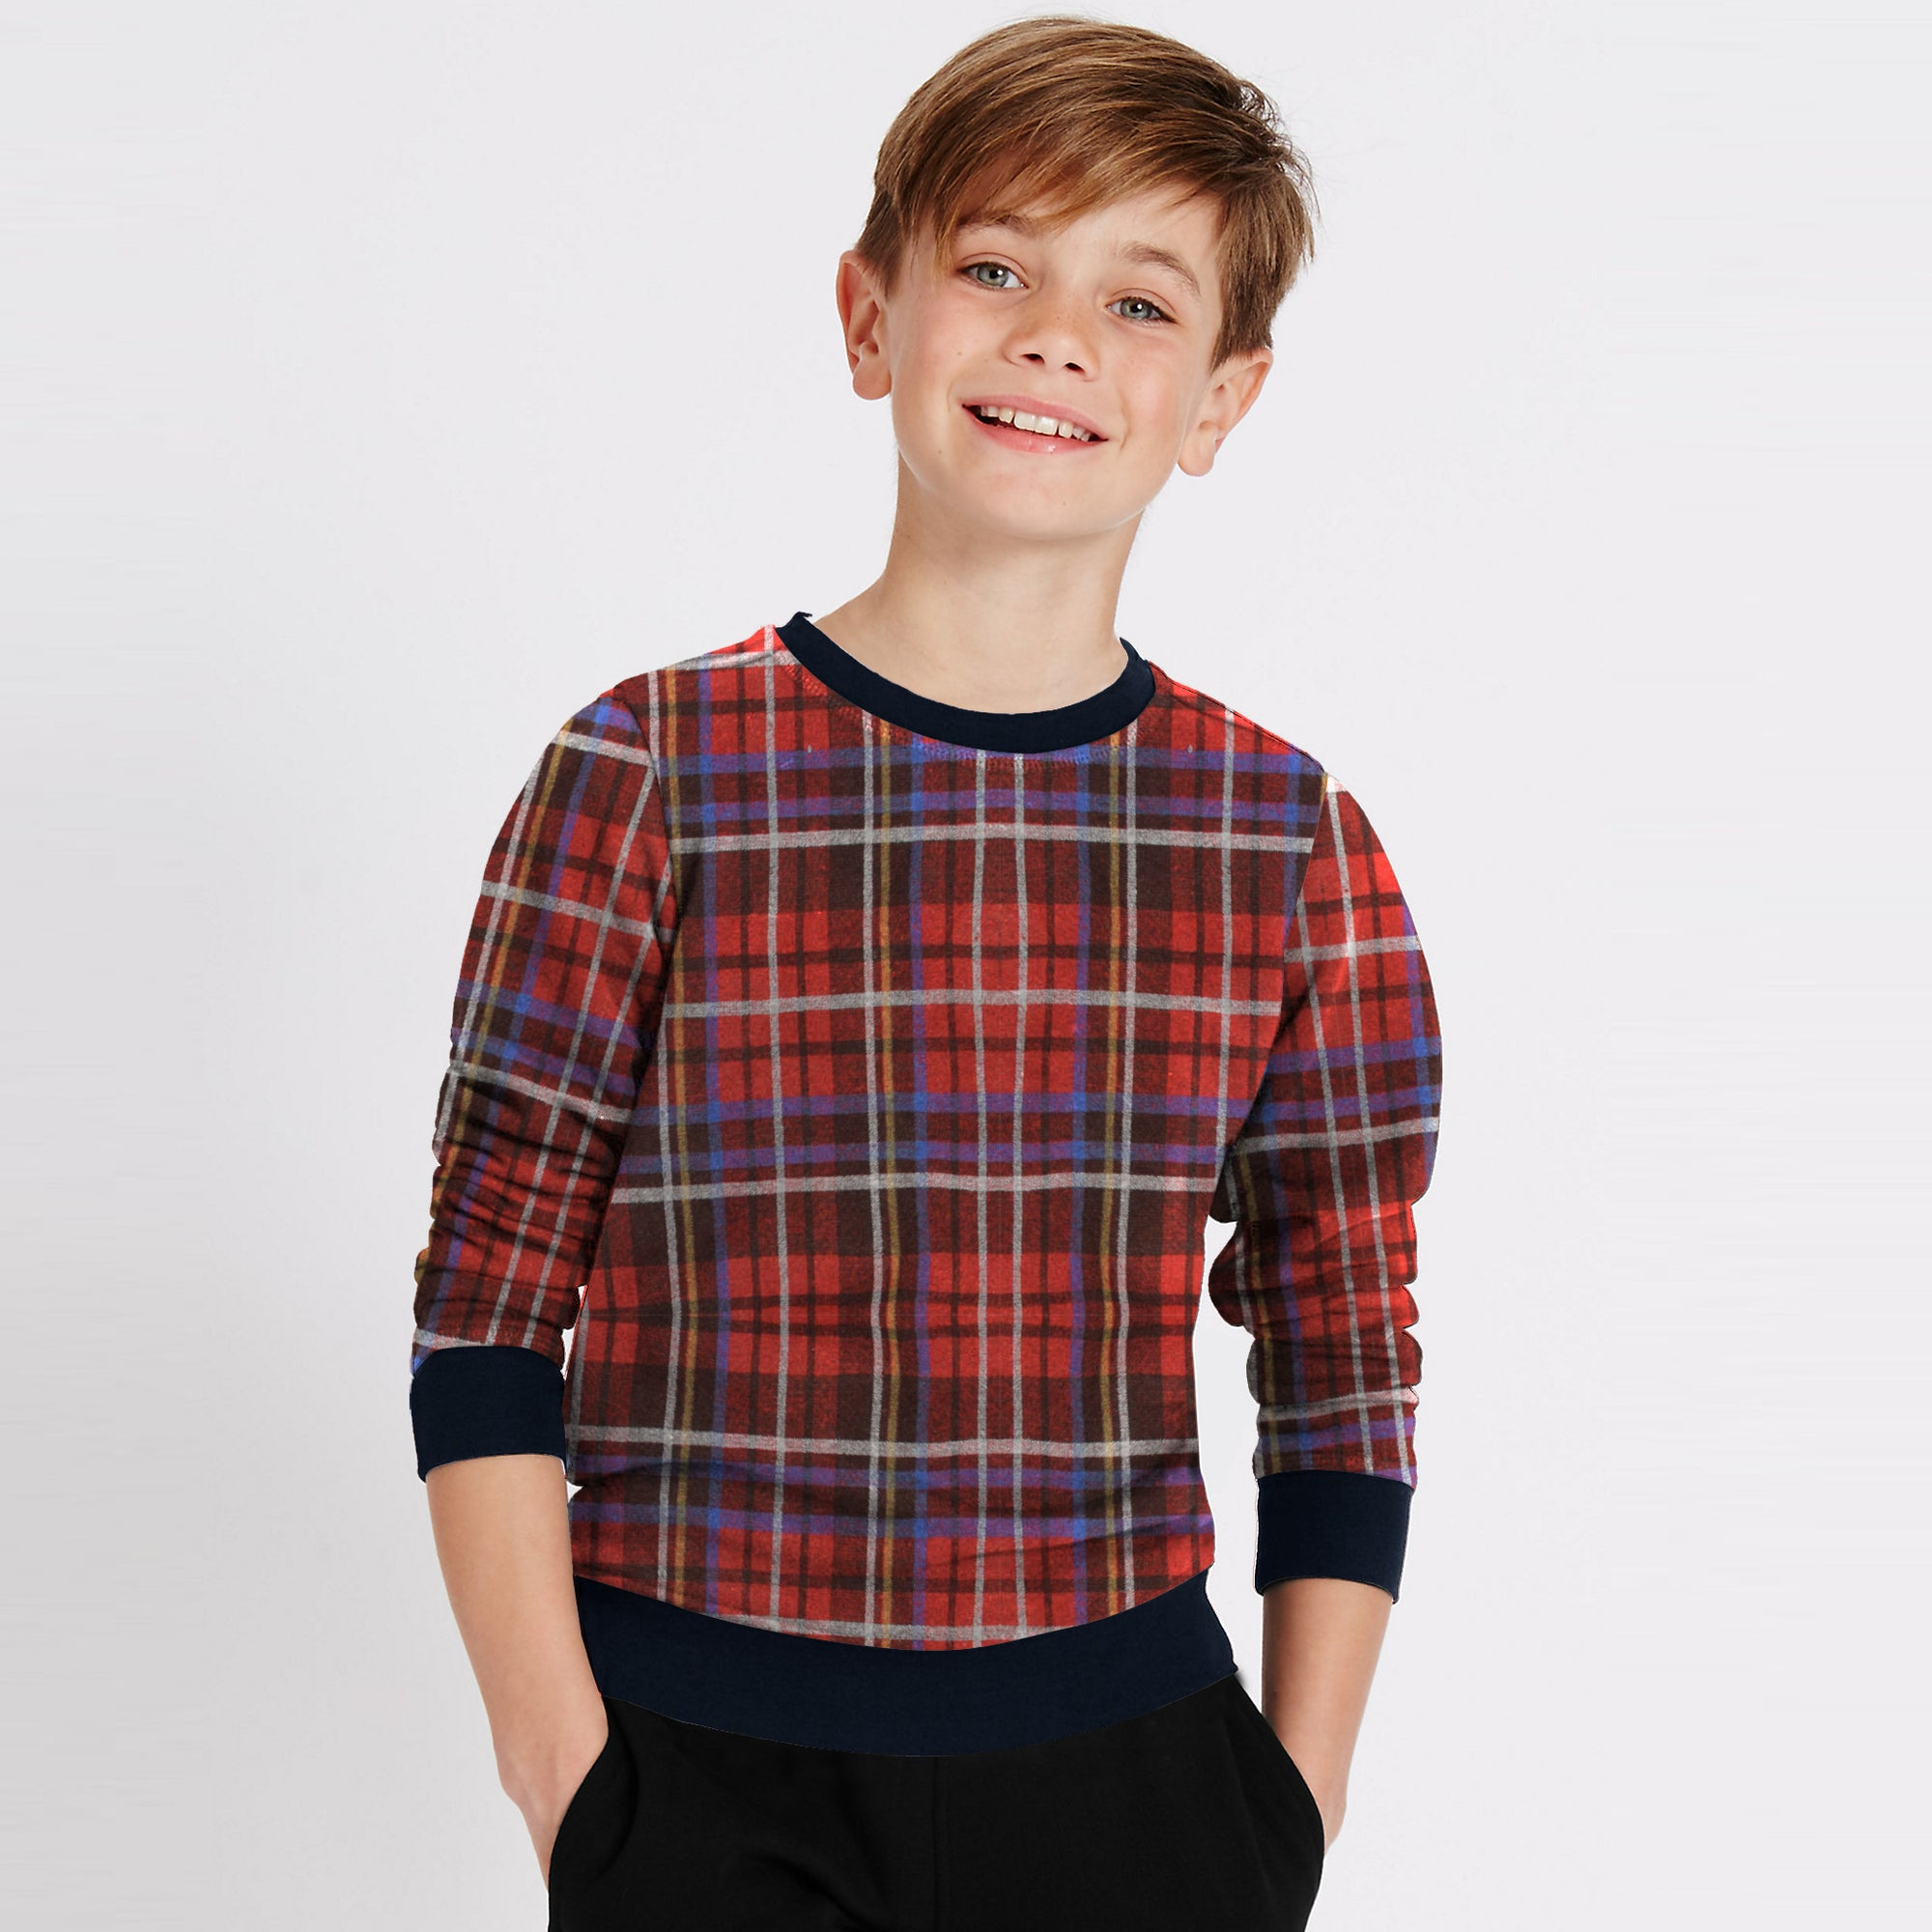 Tommy Hilfiger Fleece Crew Neck Sweatshirt For Kids-Allover Print-SP1378